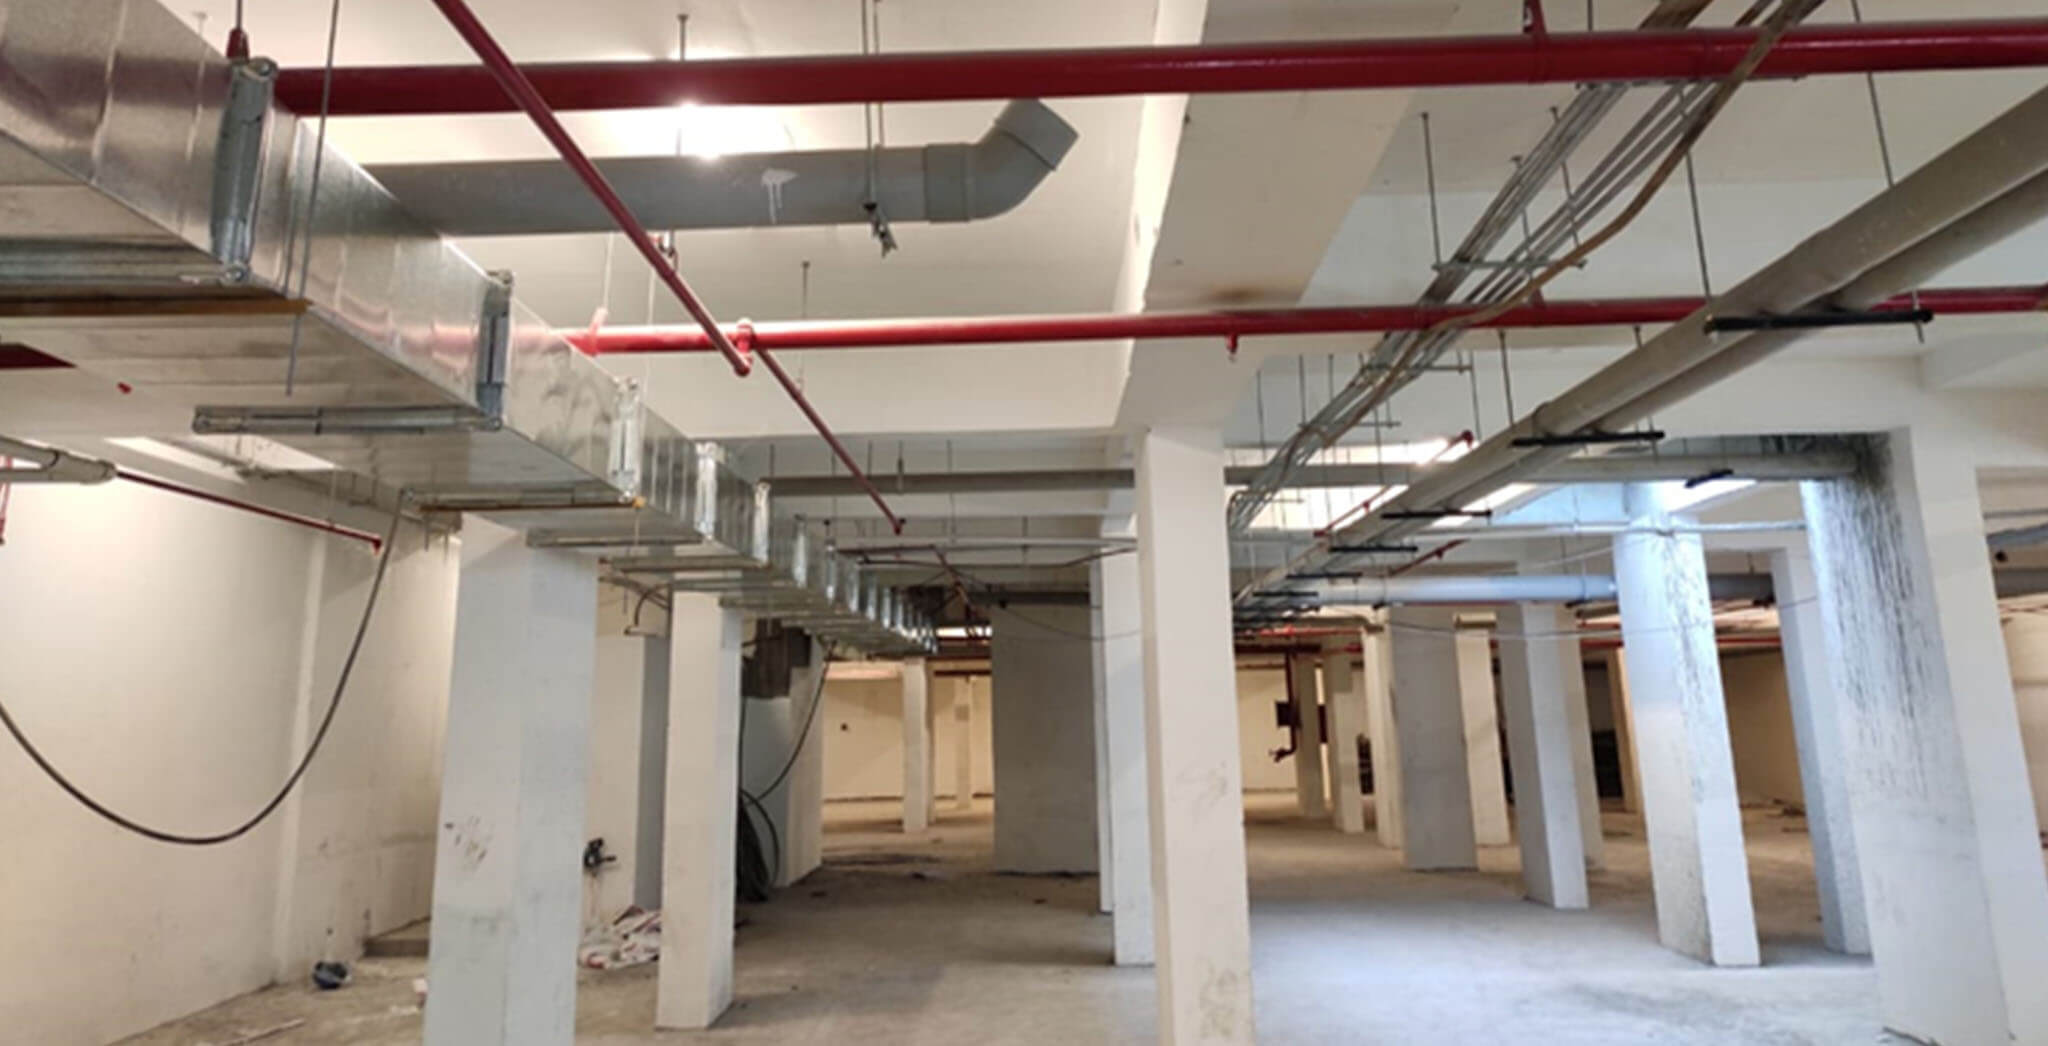 May 2021 - Basement VDF & MEP works completed